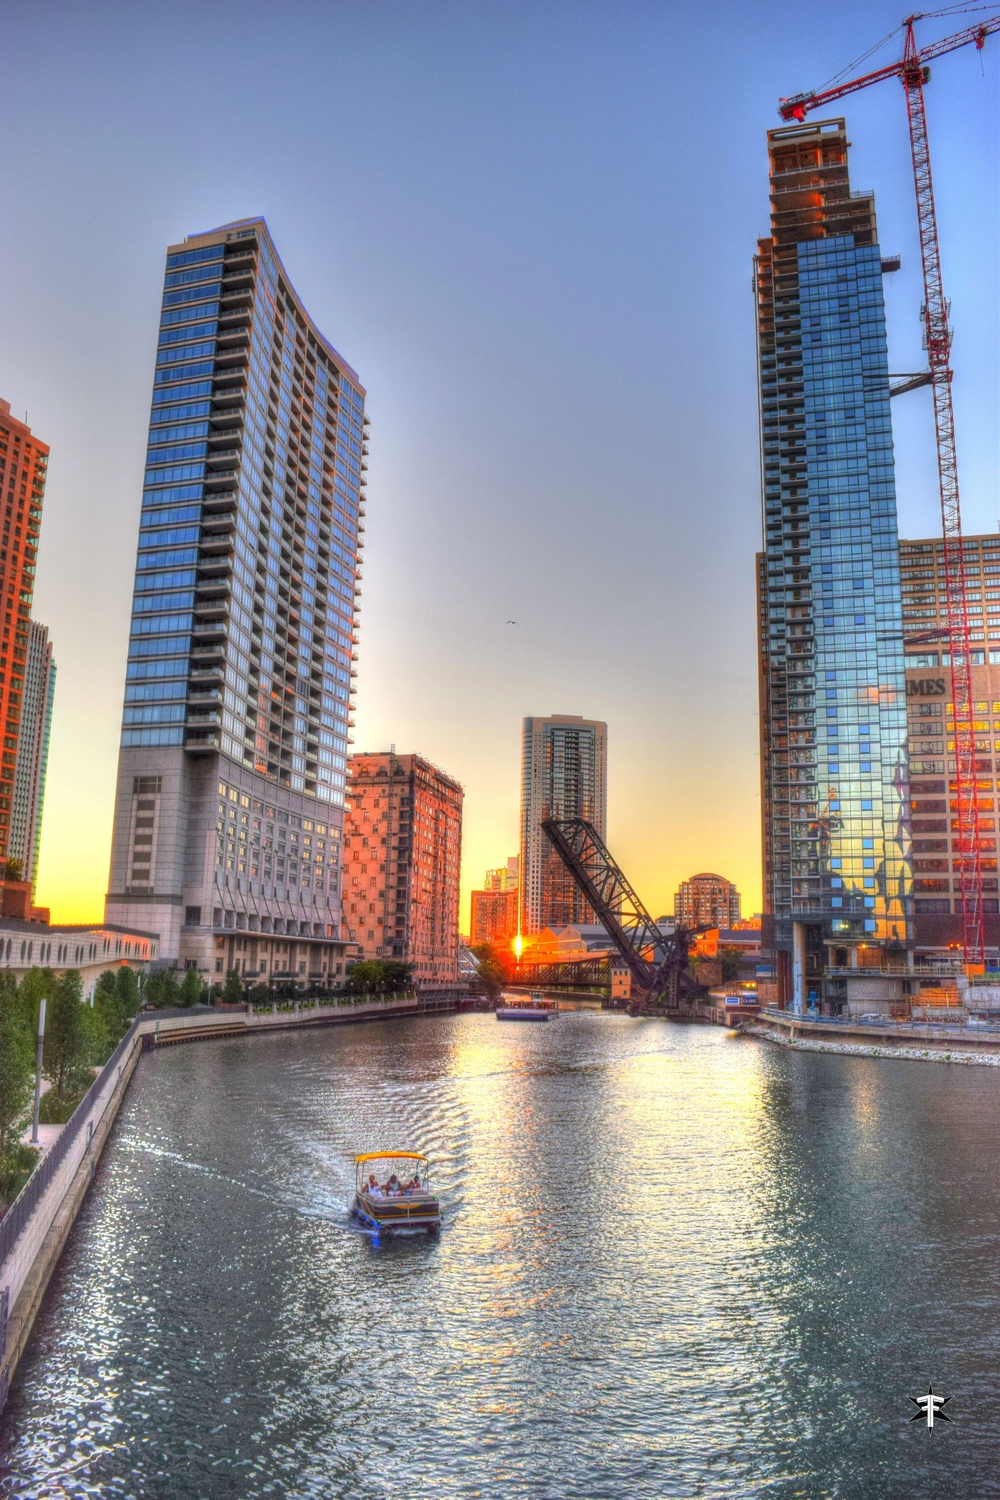 batch_wolf point construction building chicago goldenhour sunset boat.jpg